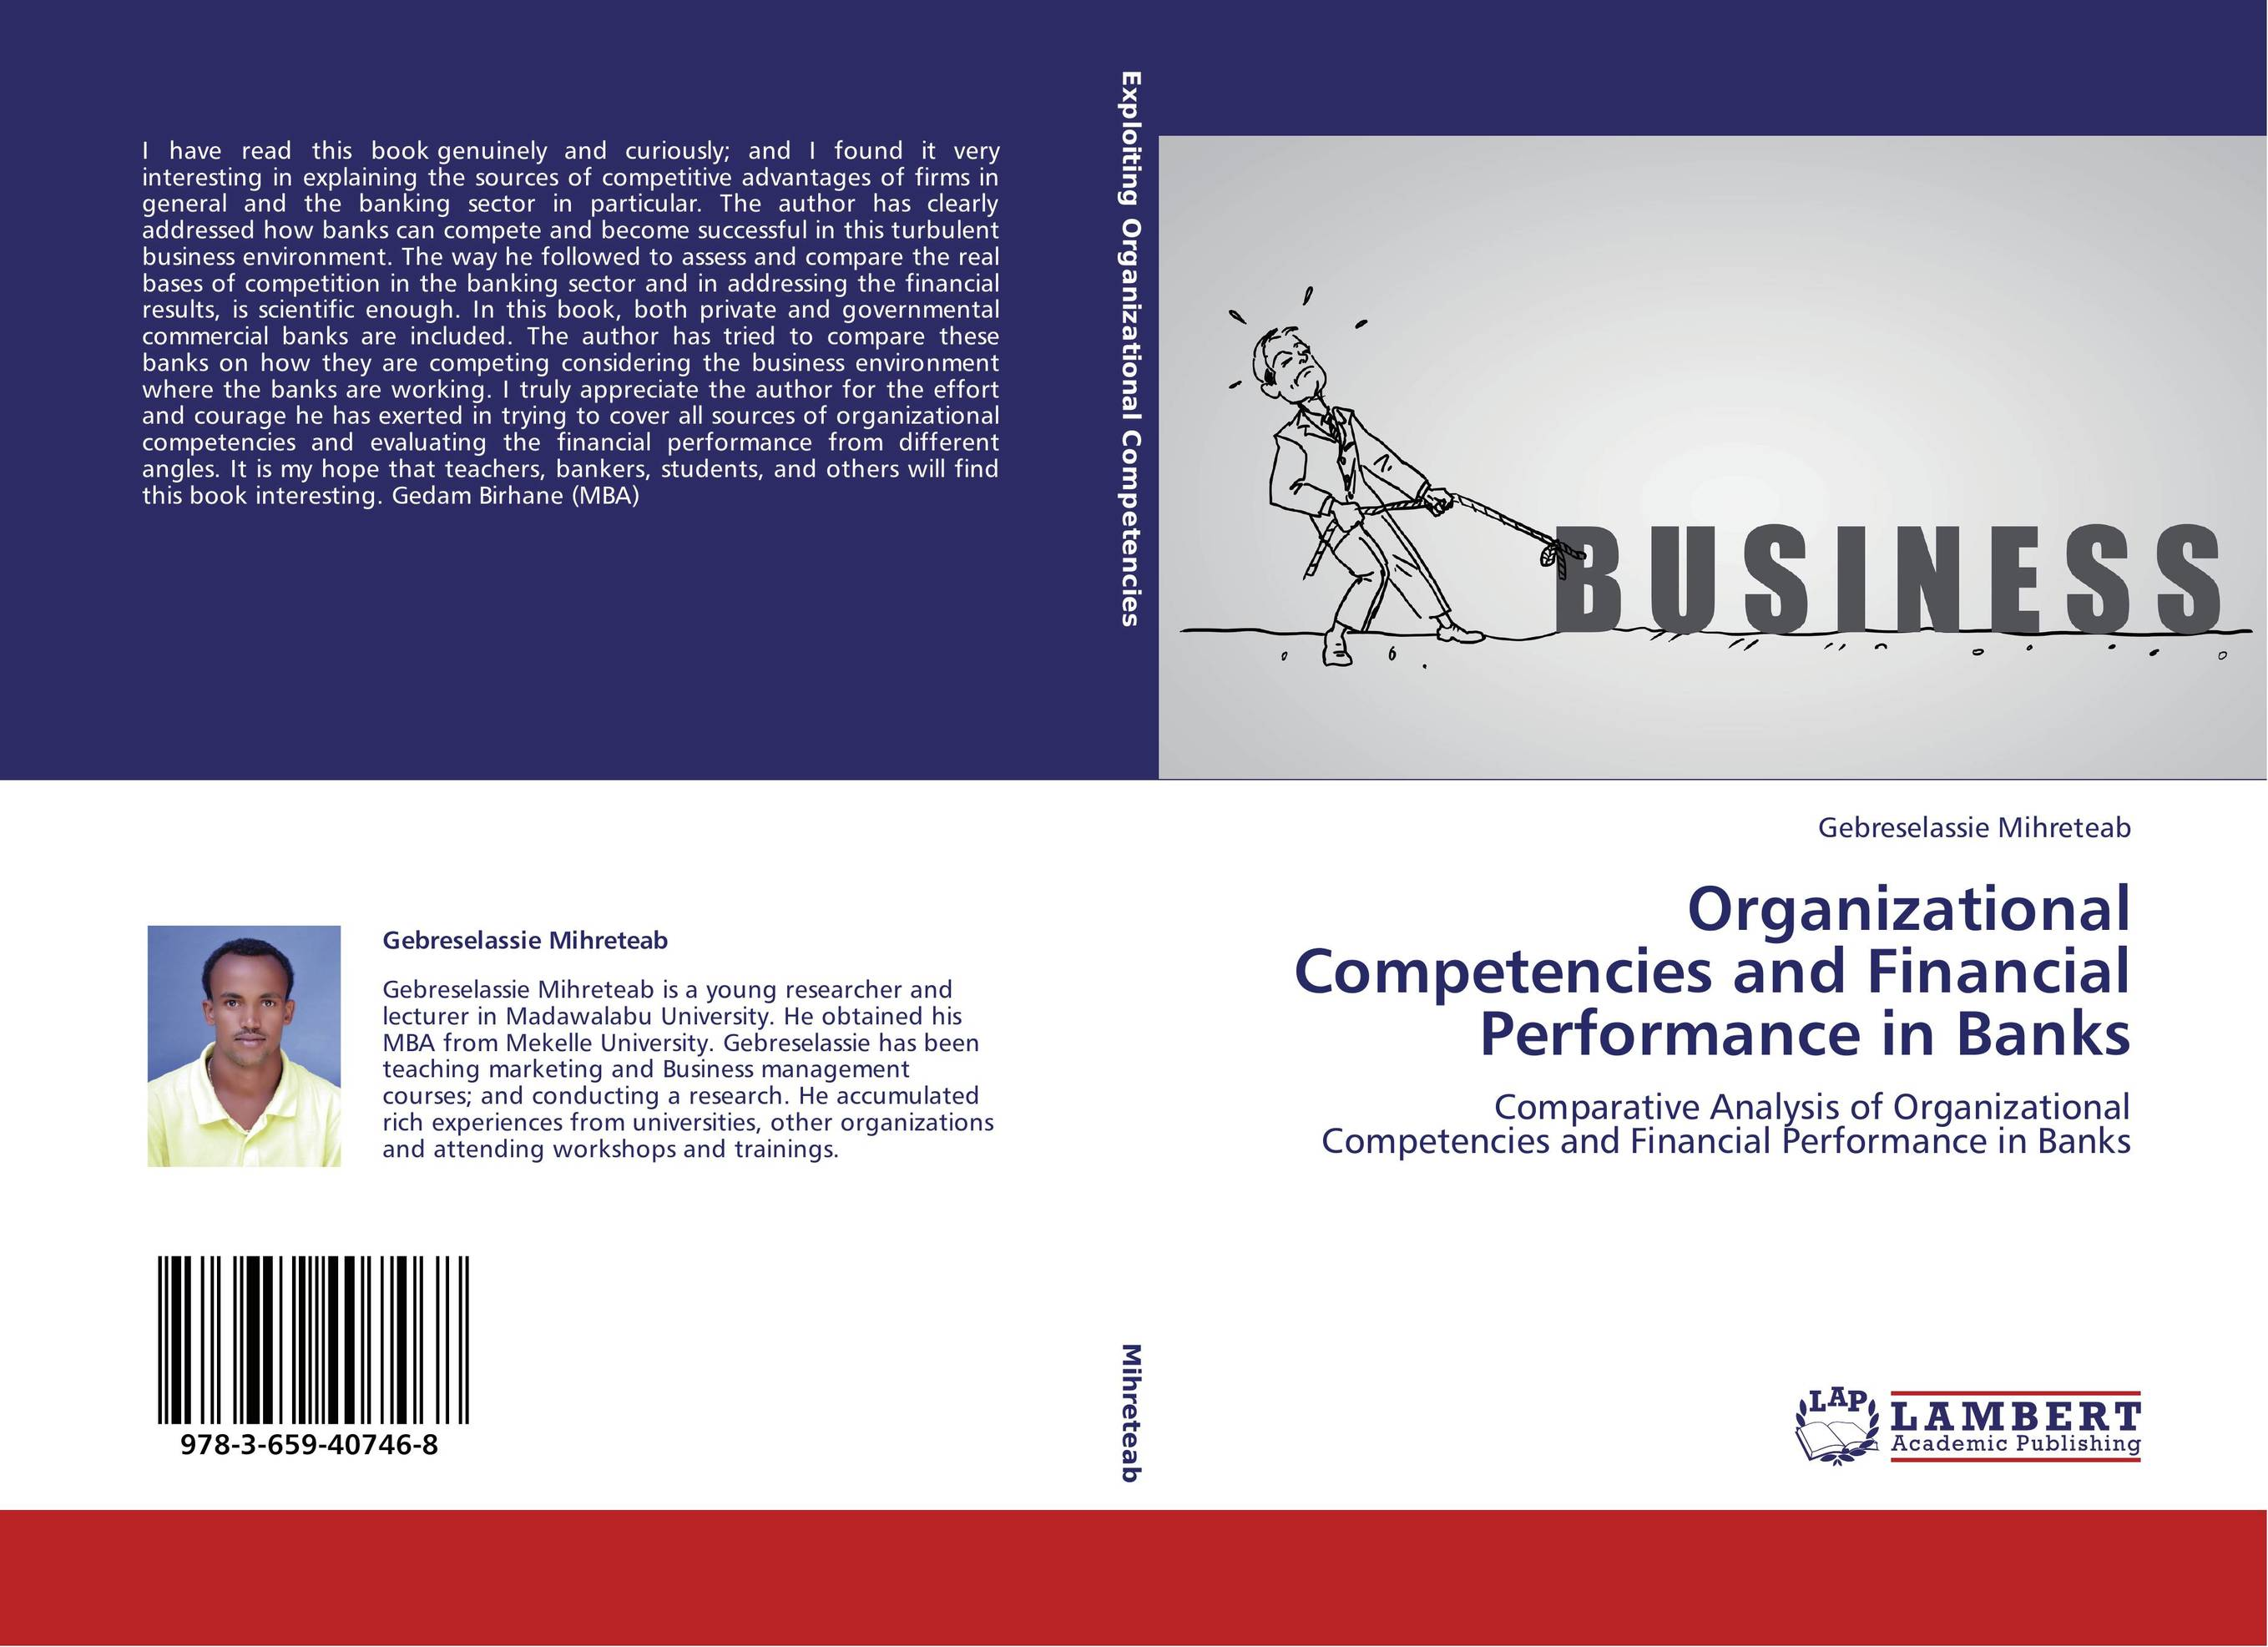 banking comparative analysis of public and The authors done a comparative analysis of banking sector and ranked the banks based on their e-readiness key words: e-finance, digital wallet, e-readiness, global village, digital signature 3.